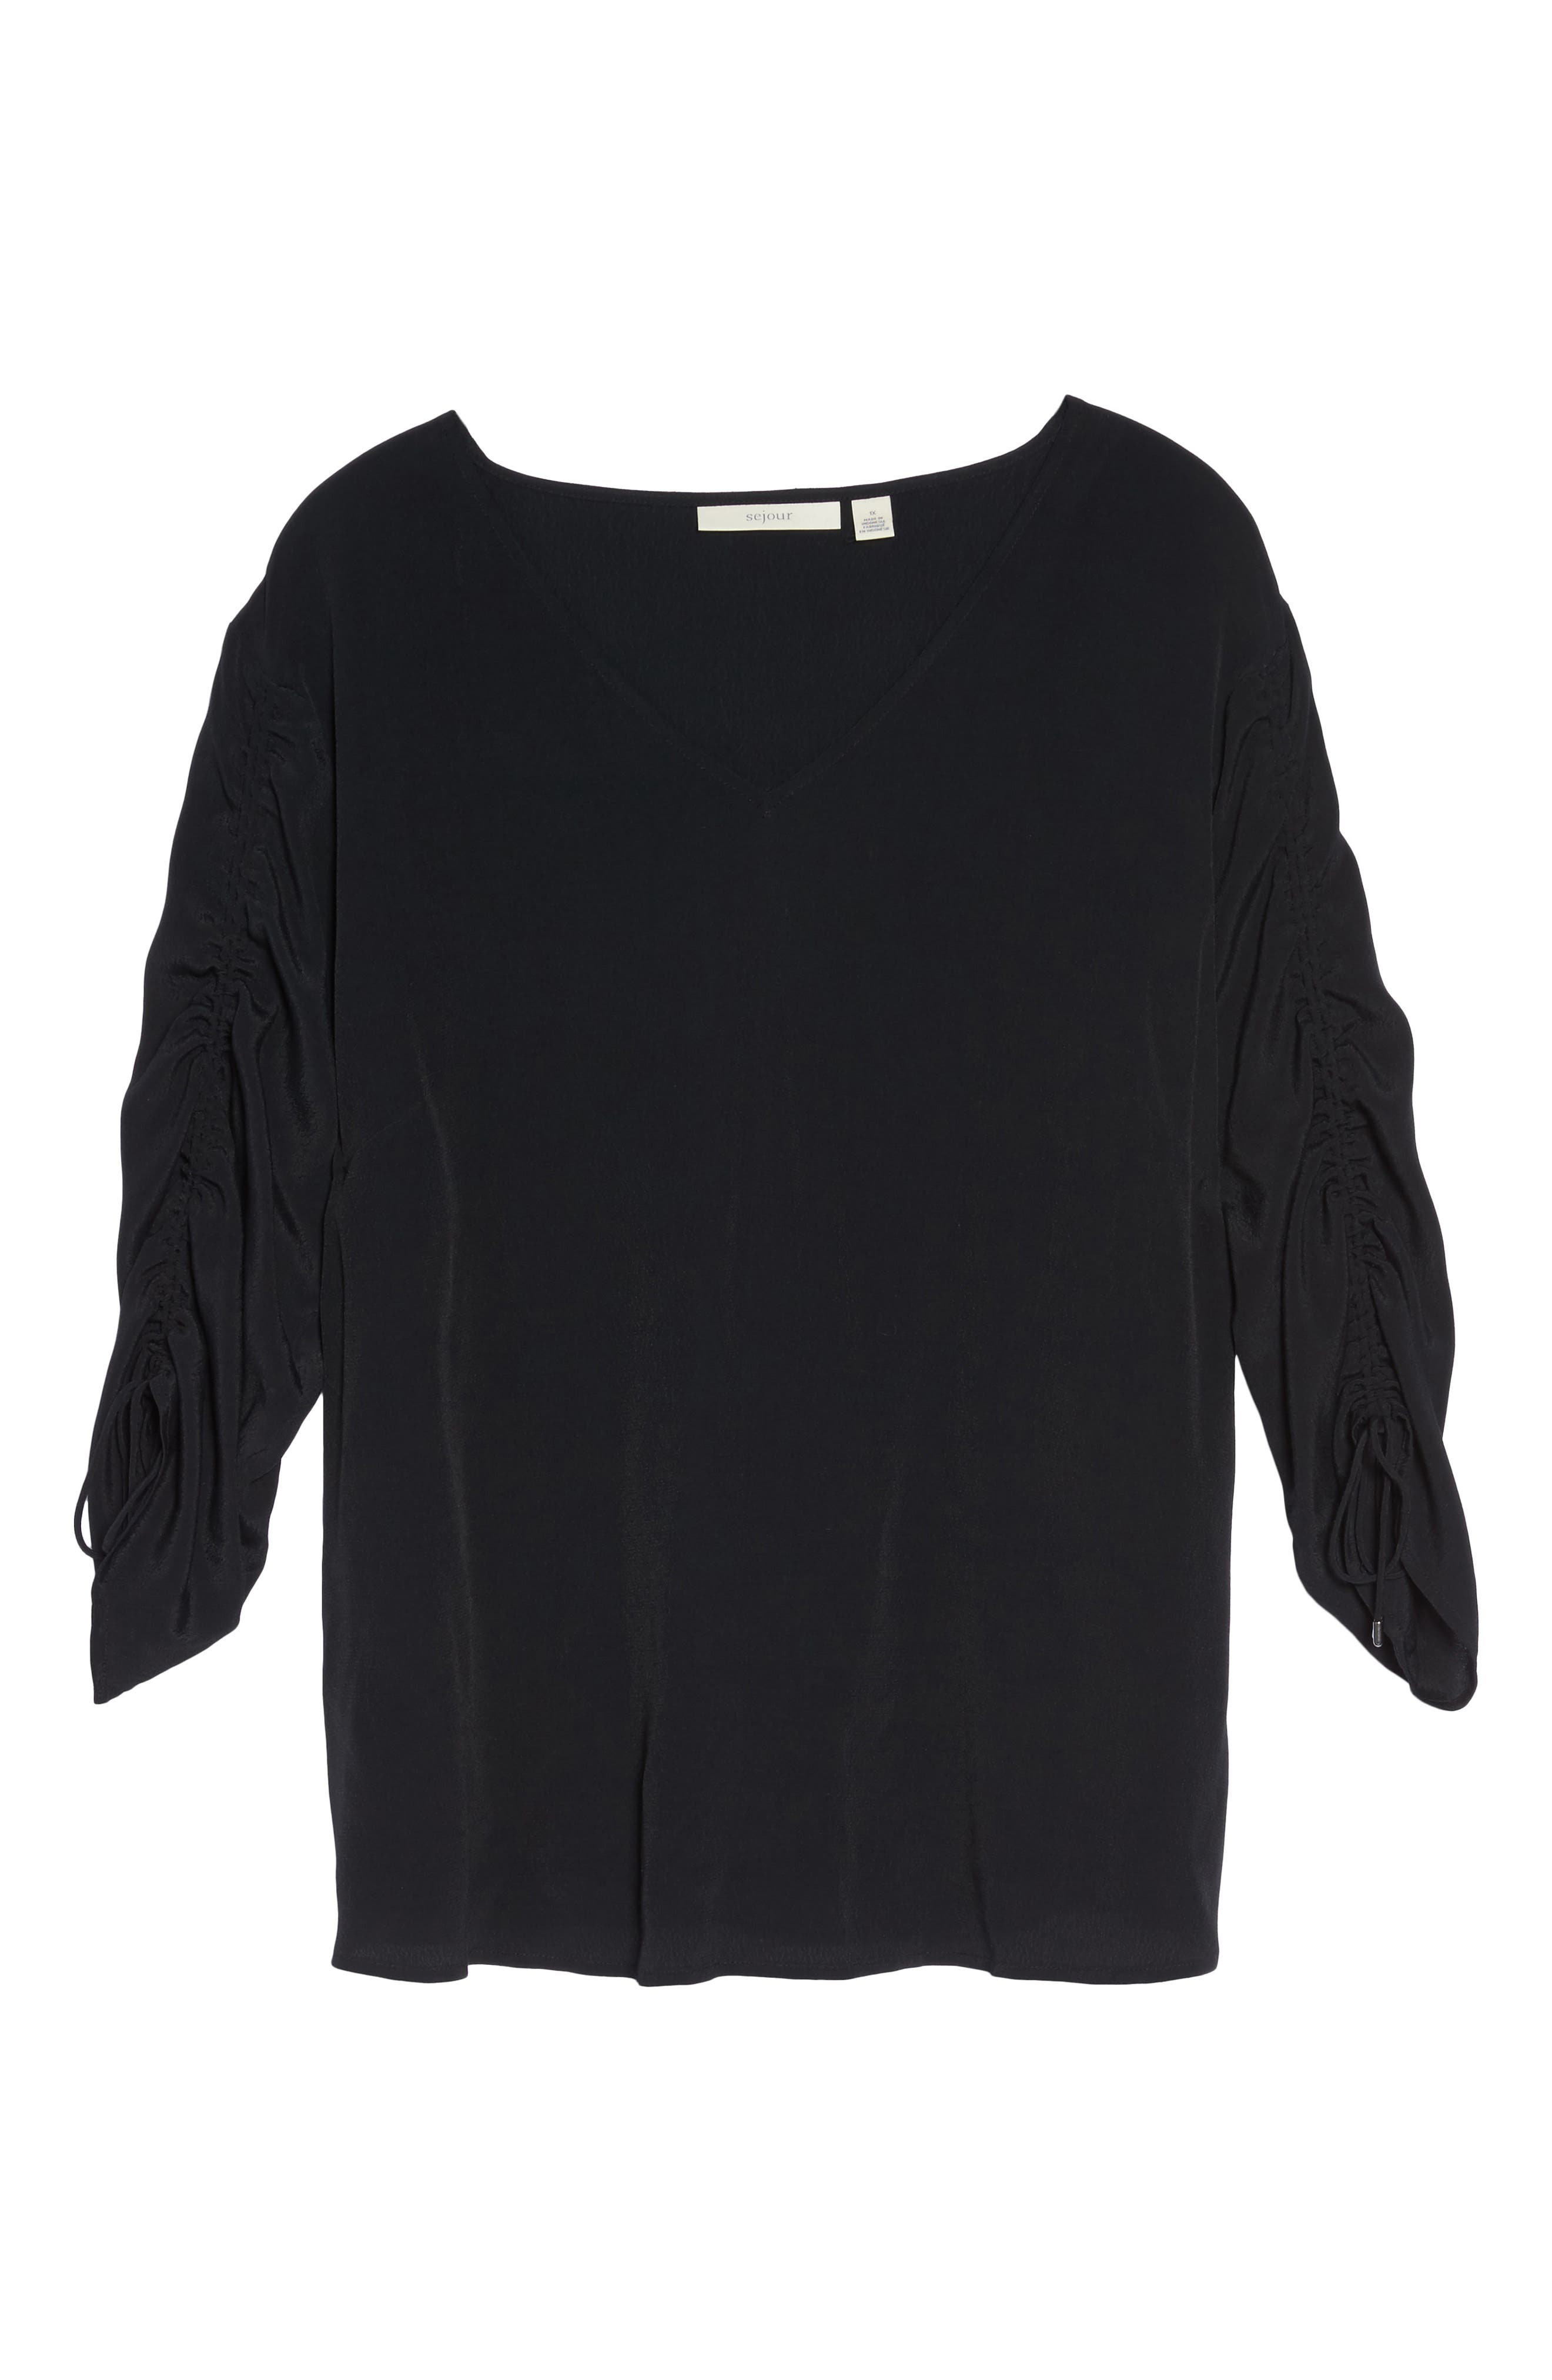 Cinched Sleeve Top,                             Alternate thumbnail 6, color,                             001